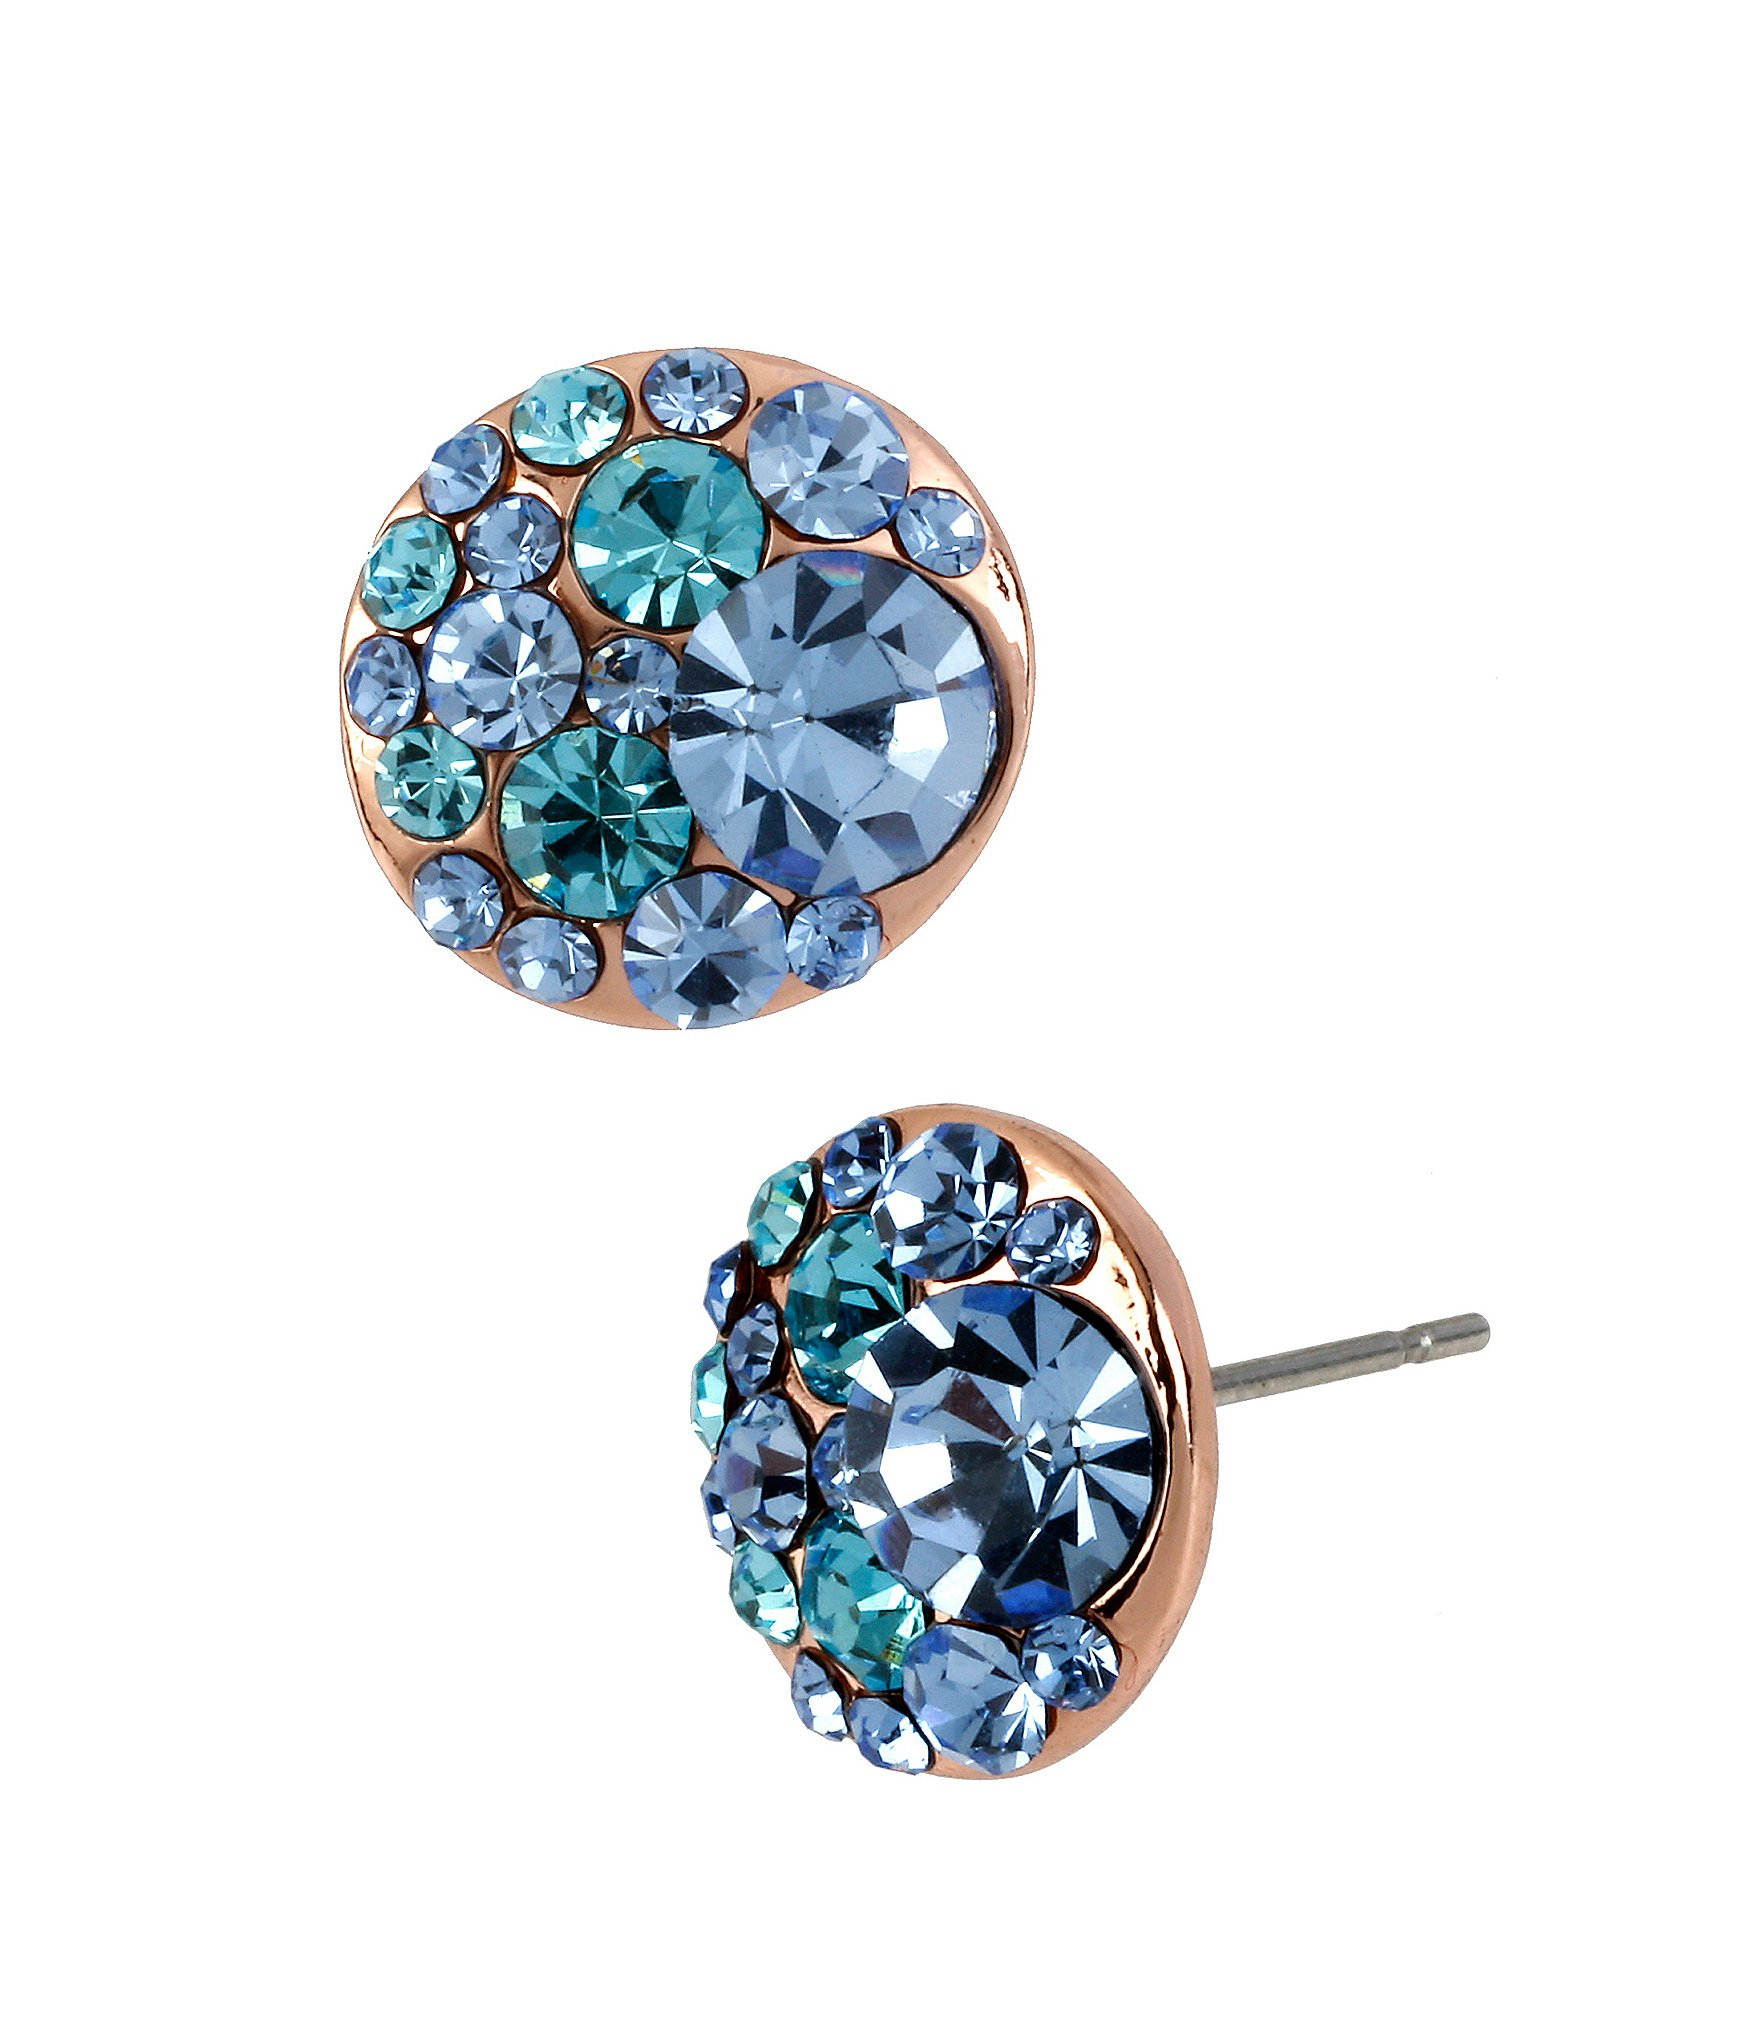 sterling suppliers wholesale stone blue stud gemstone silver earrings alibaba women showroom